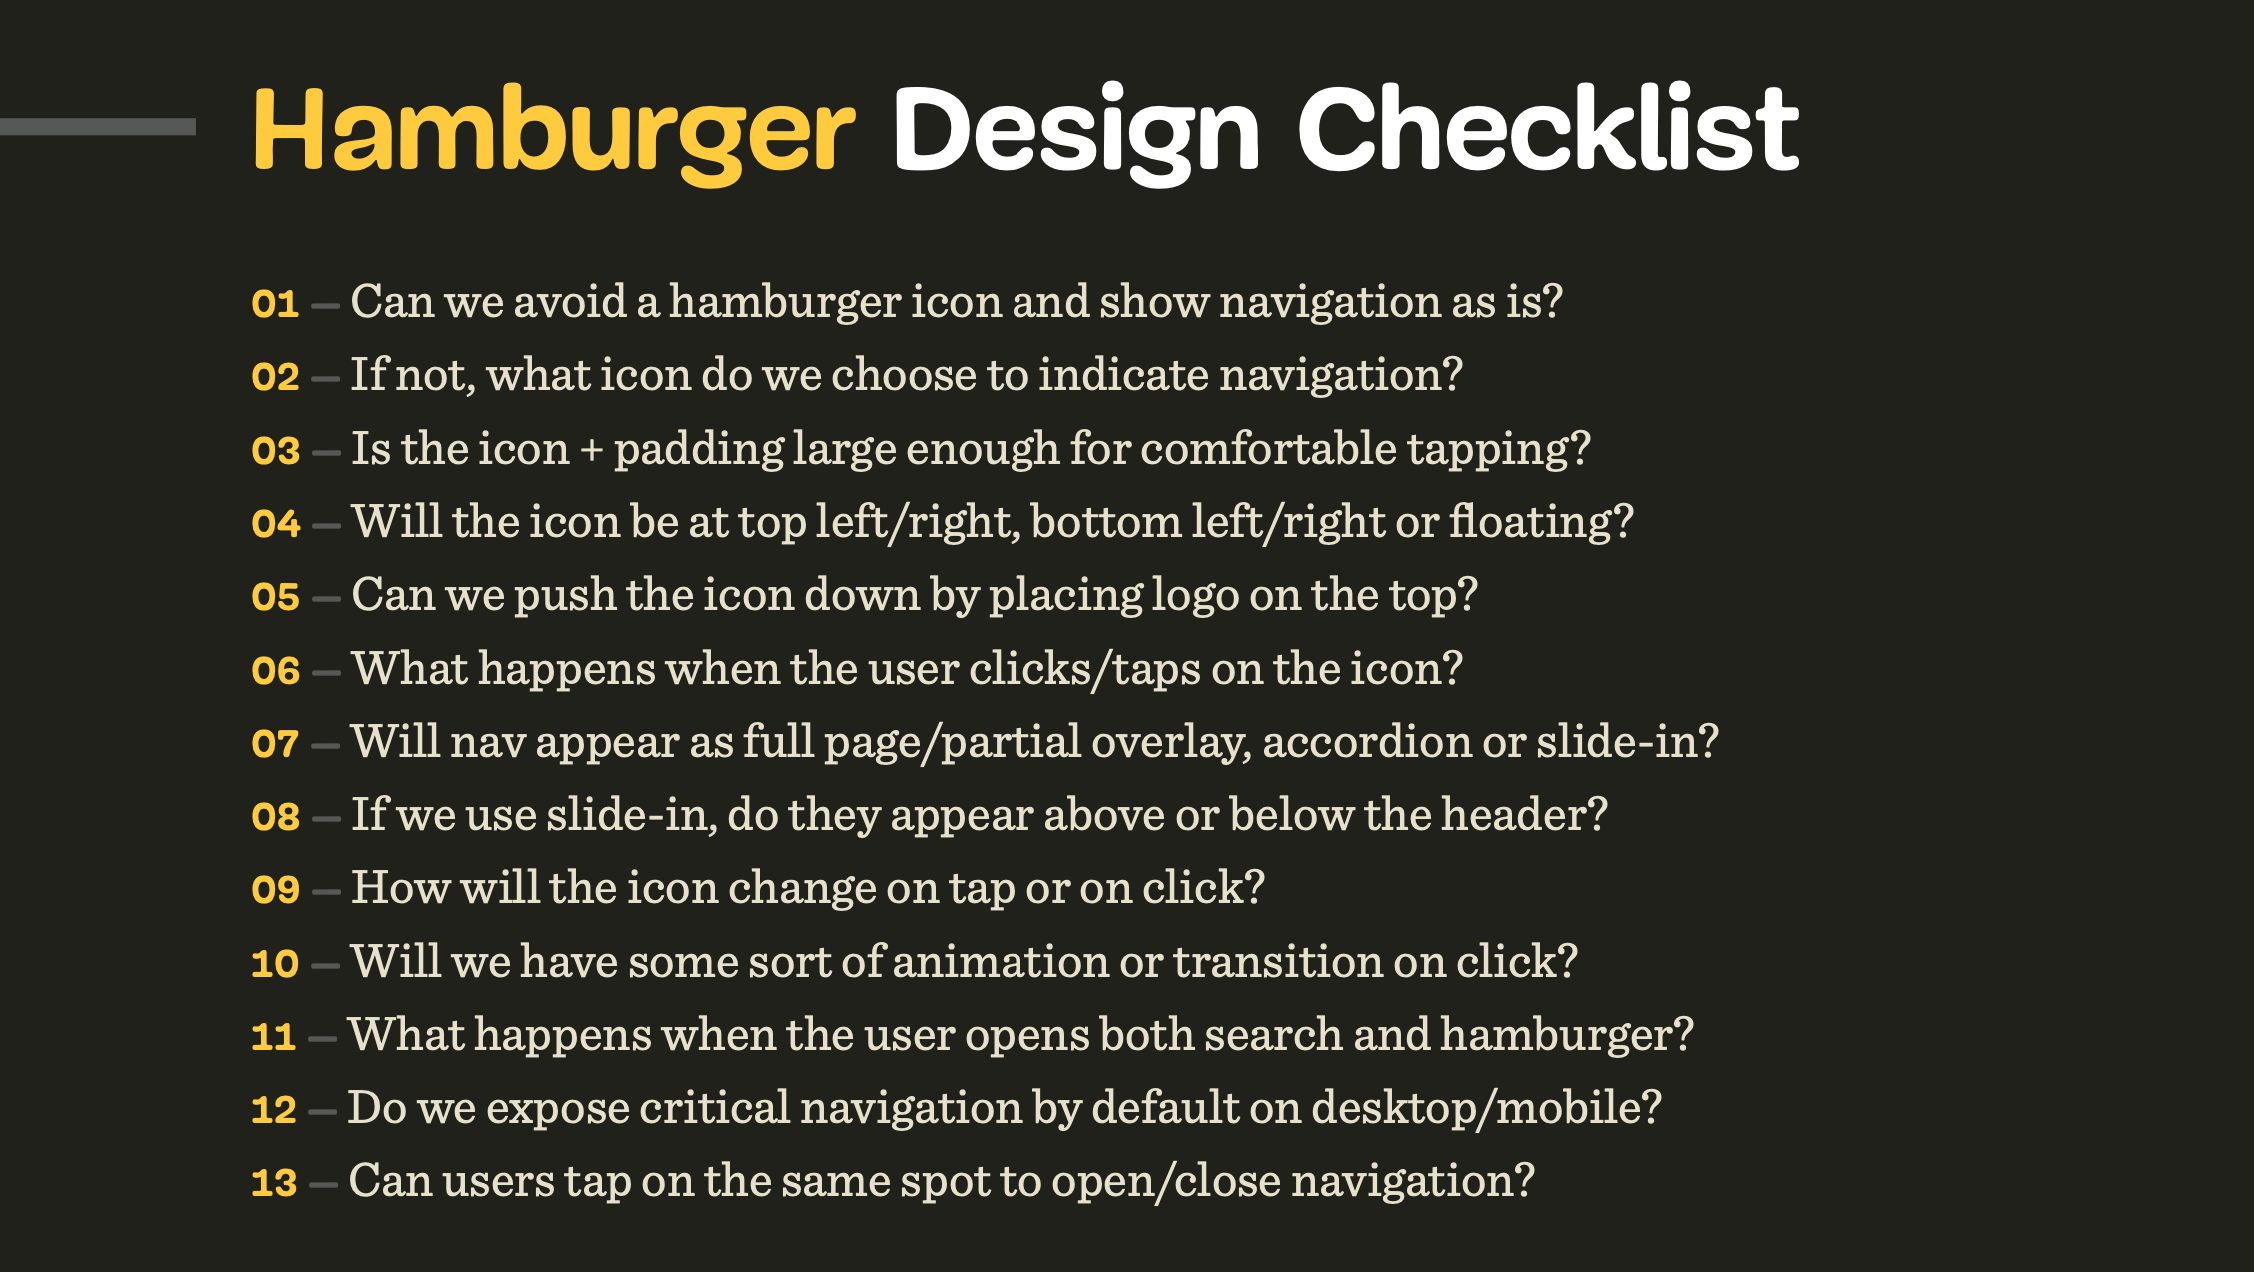 Hamburger design checklist